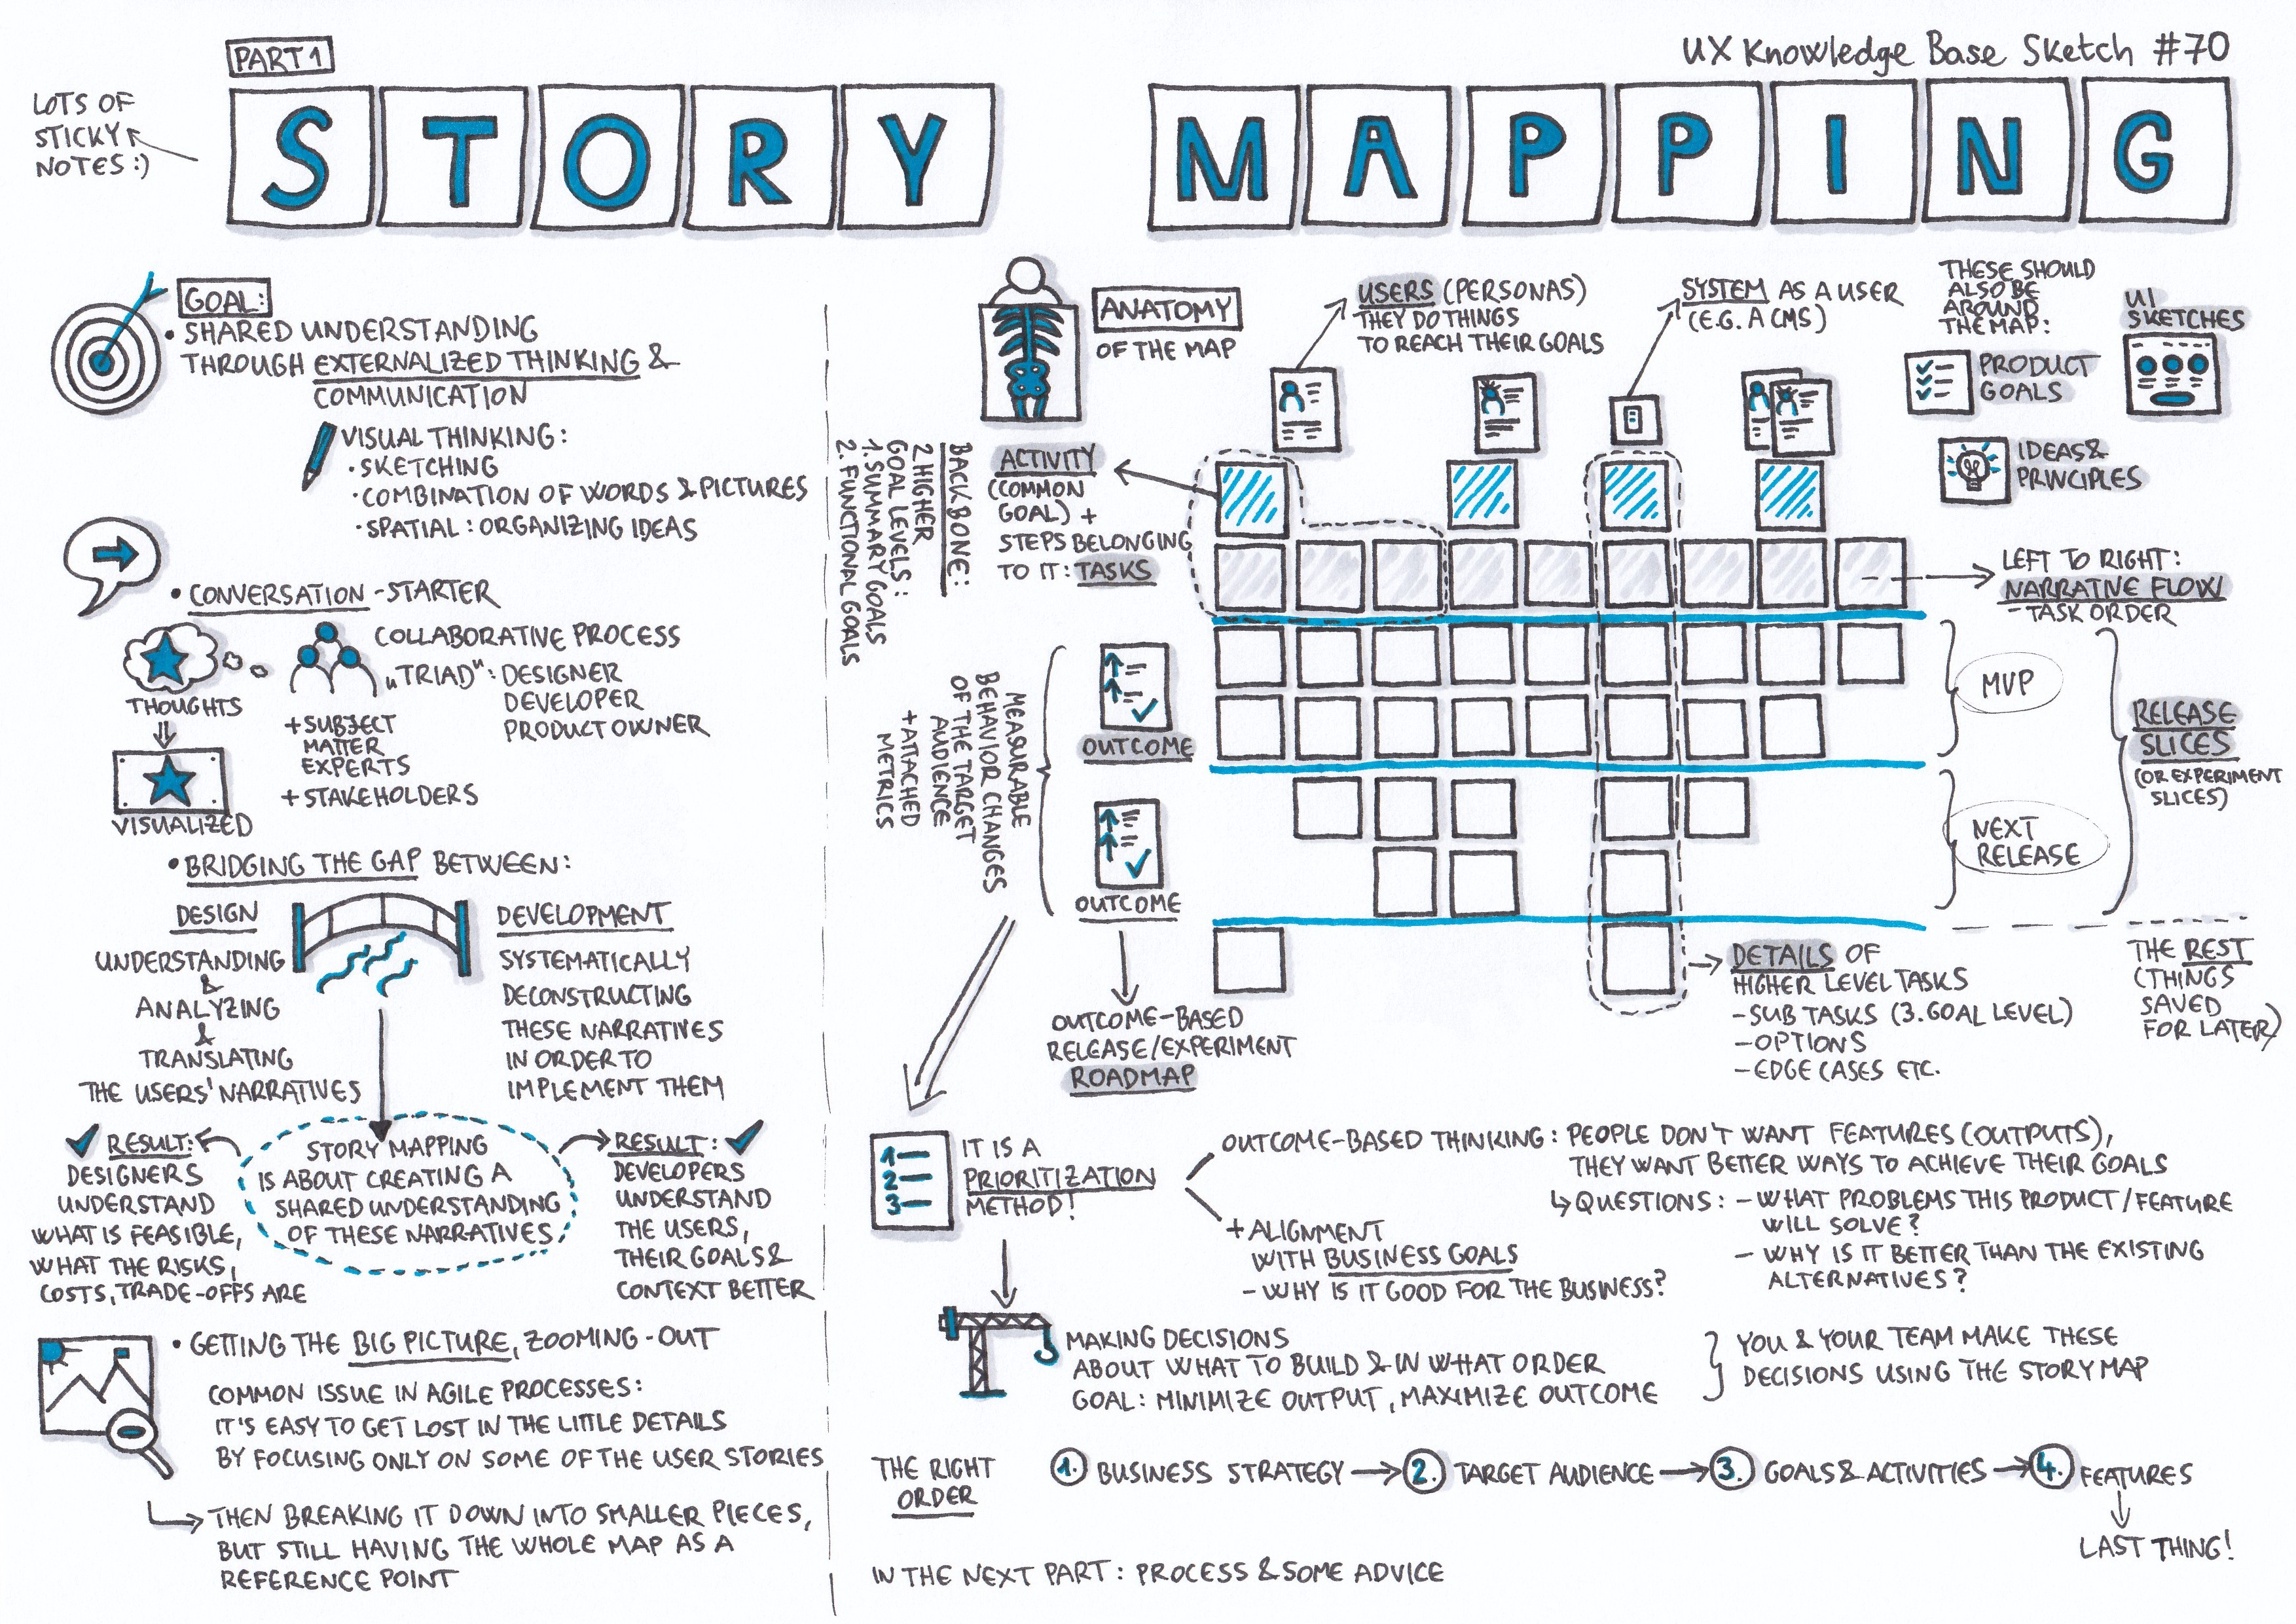 Story Mapping - Part 1 - UX Knowledge Base Sketch on